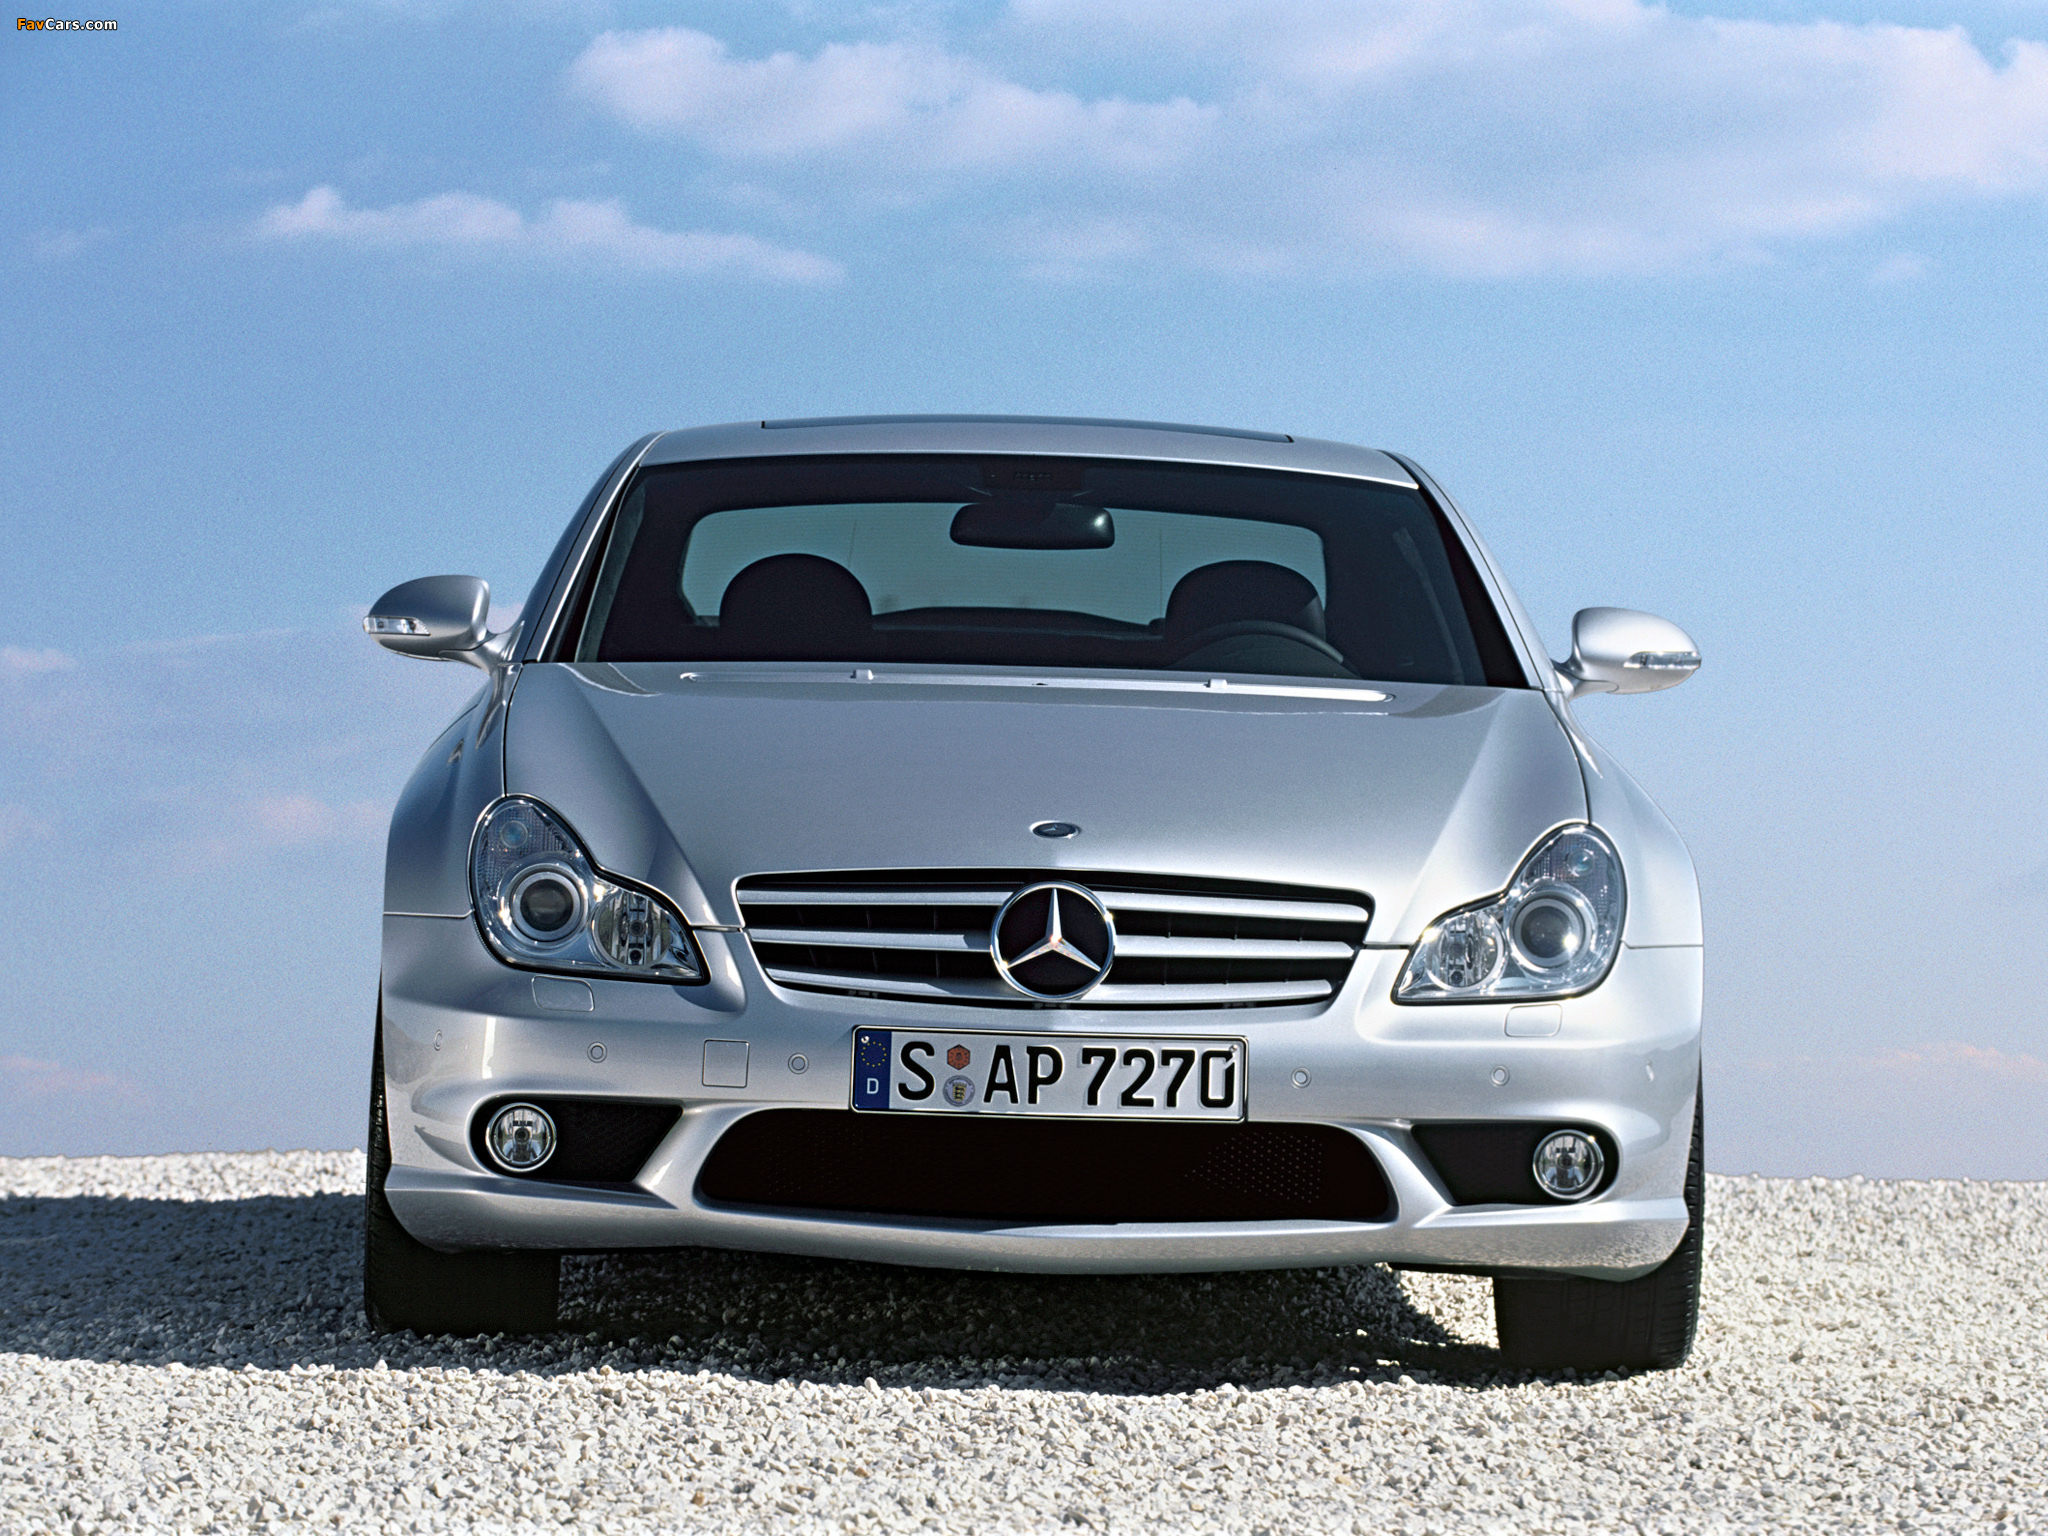 Mercedes Benz Cls 63 Amg C219 2007 08 Pictures 265951 further Wei c3 9f Mercedes Benz Cls 63 Amg Rooftop wallpapers 34842 1920x1080 1 as well Mercedes Benz Amg C63 S Coupe C Klasse V8 Iaa 2015 Live 31 likewise 2011 MEC Design Mercedes Benz SLS 63 AMG Diffusor 3 1920x1440 furthermore Mercedes Amg C63 S Edition 1. on mercedes benz c 63 amg